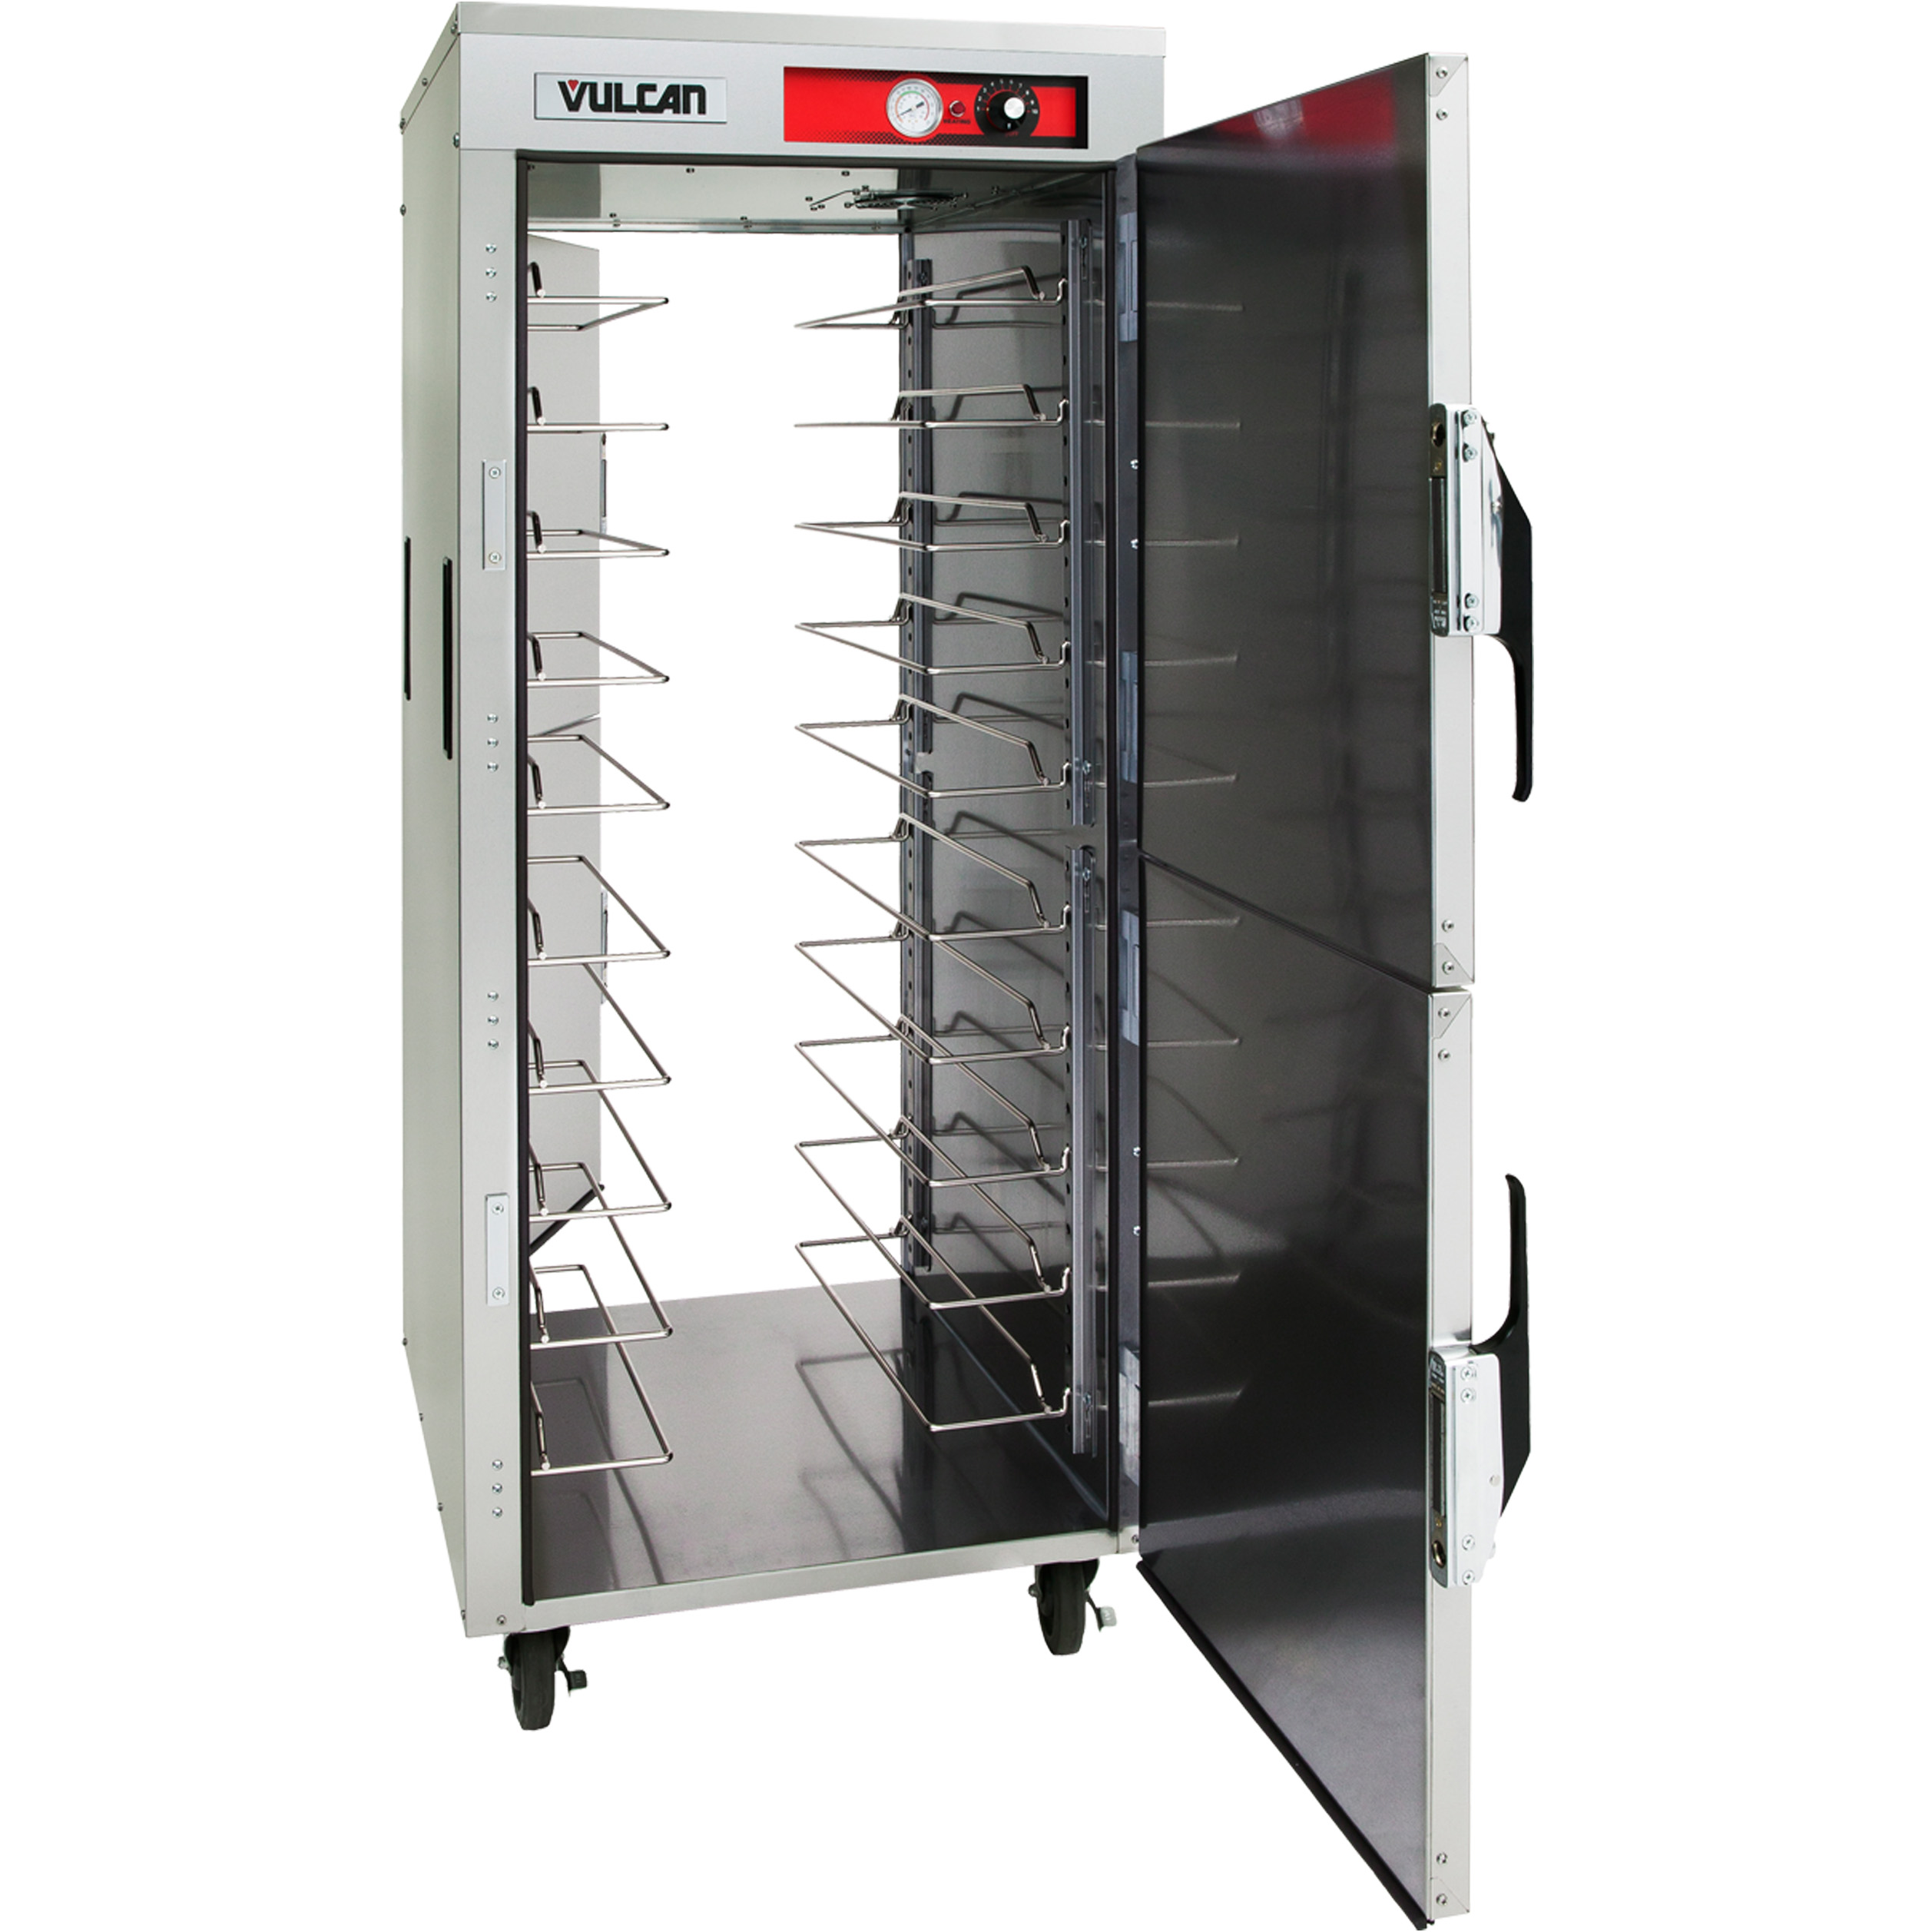 Vulcan VPT15 heated cabinet, mobile, pass-thru